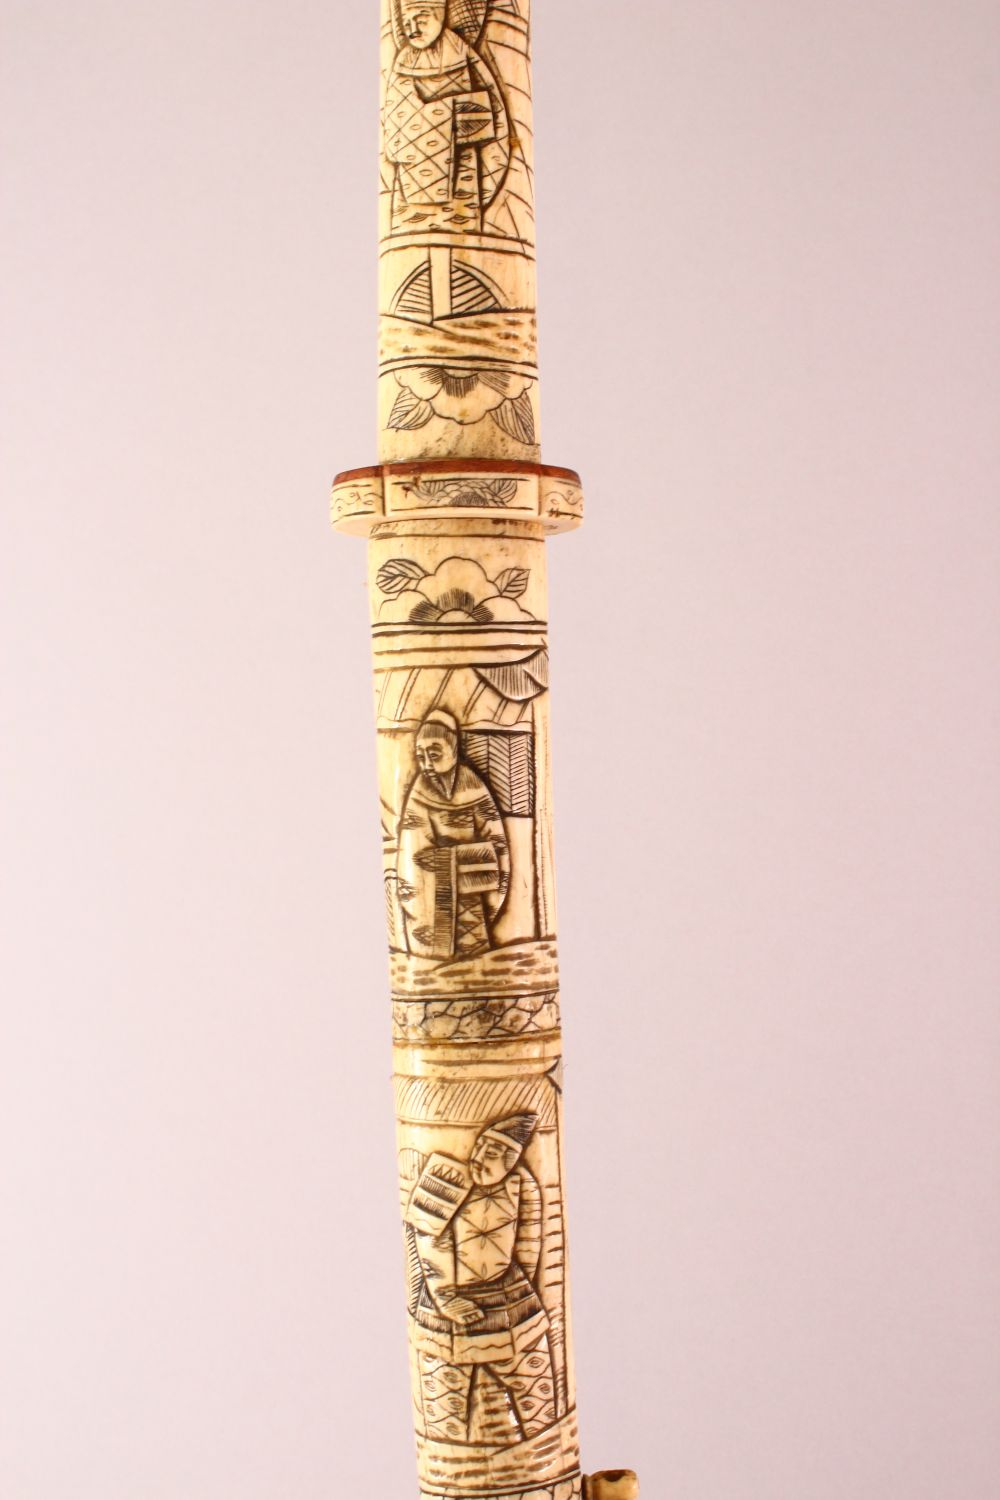 A JAPANESE MEIJI PERIOD SECTIONAL CARVED IVORY SWORD, carved with scenes of figures (AF) 85cm - Image 7 of 7